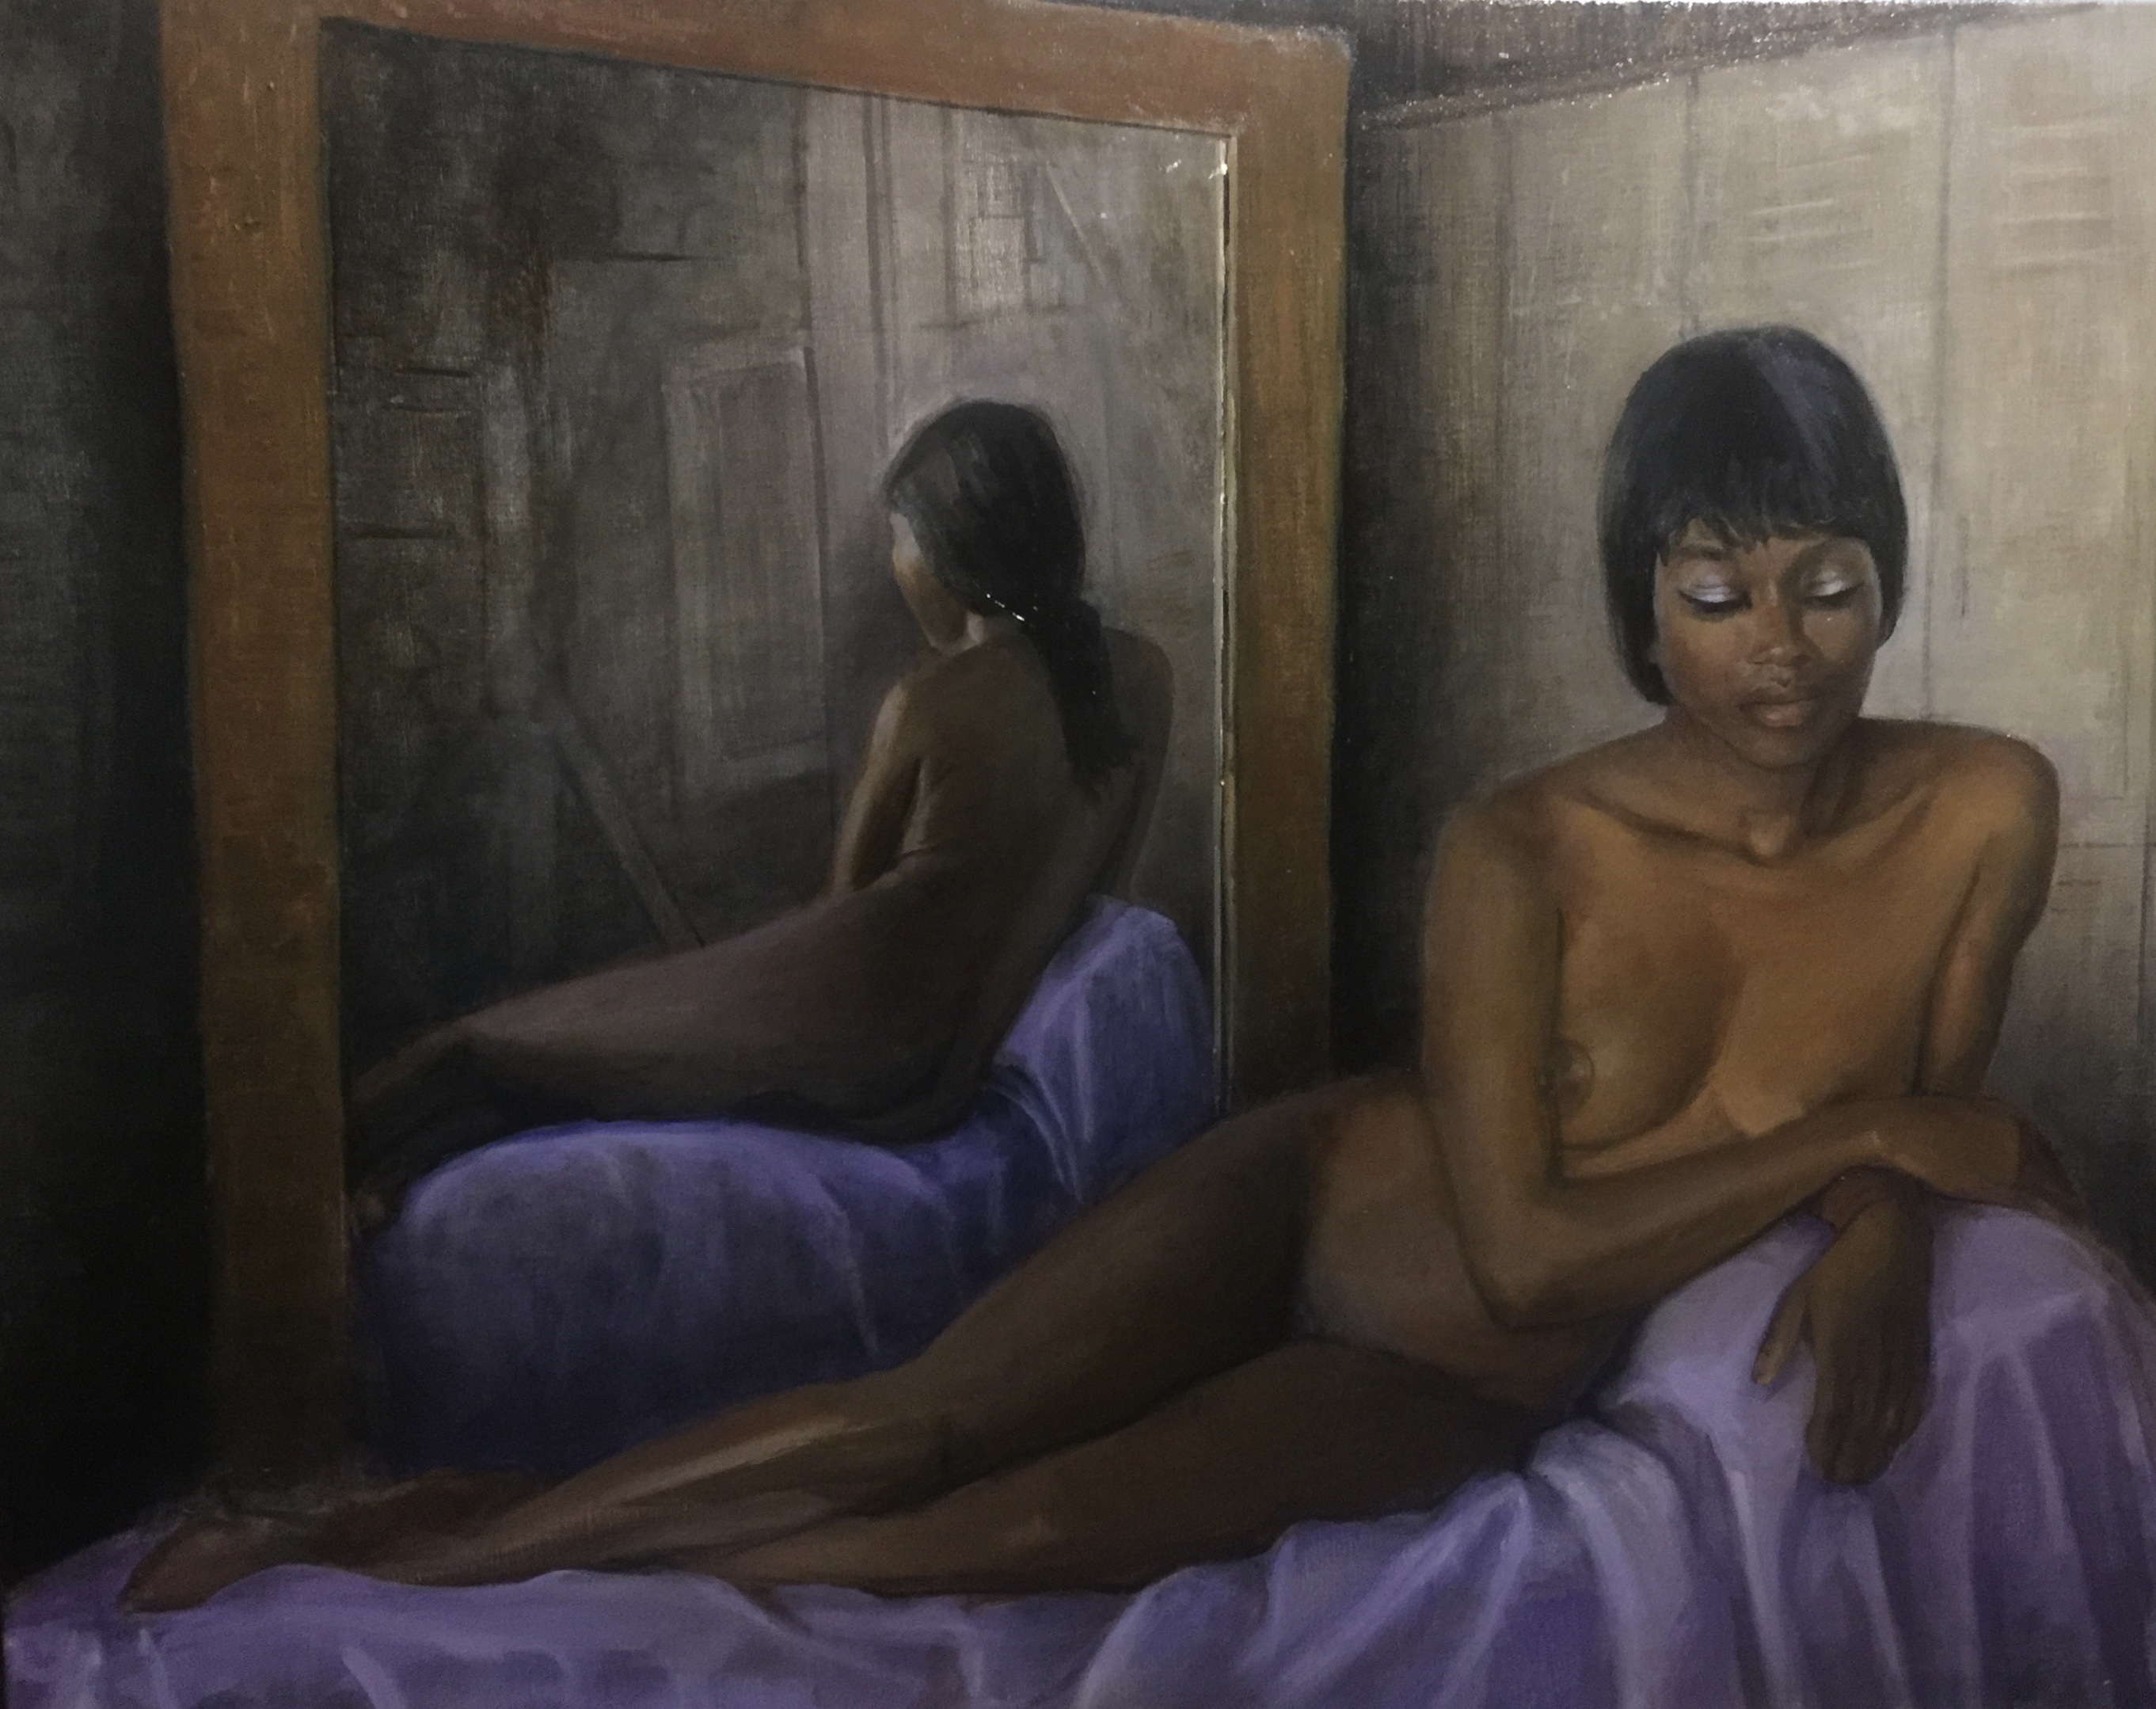 Ebony Venus and Mirror Reflection